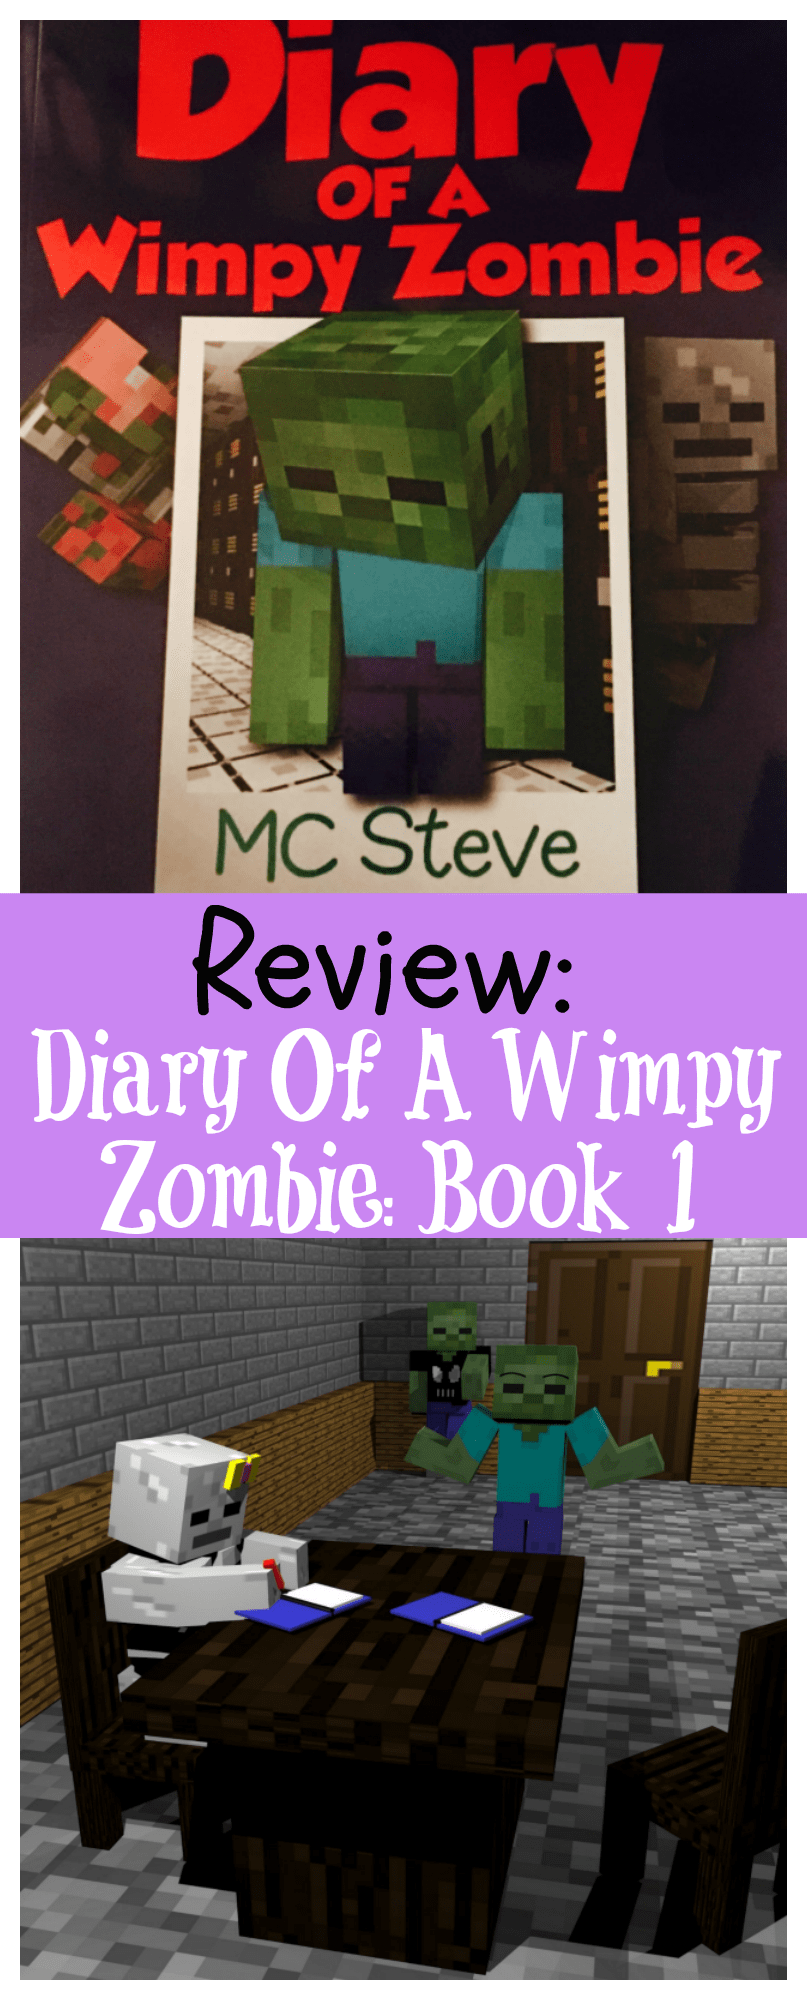 diary-of-a-wimpy-zombie-book-review